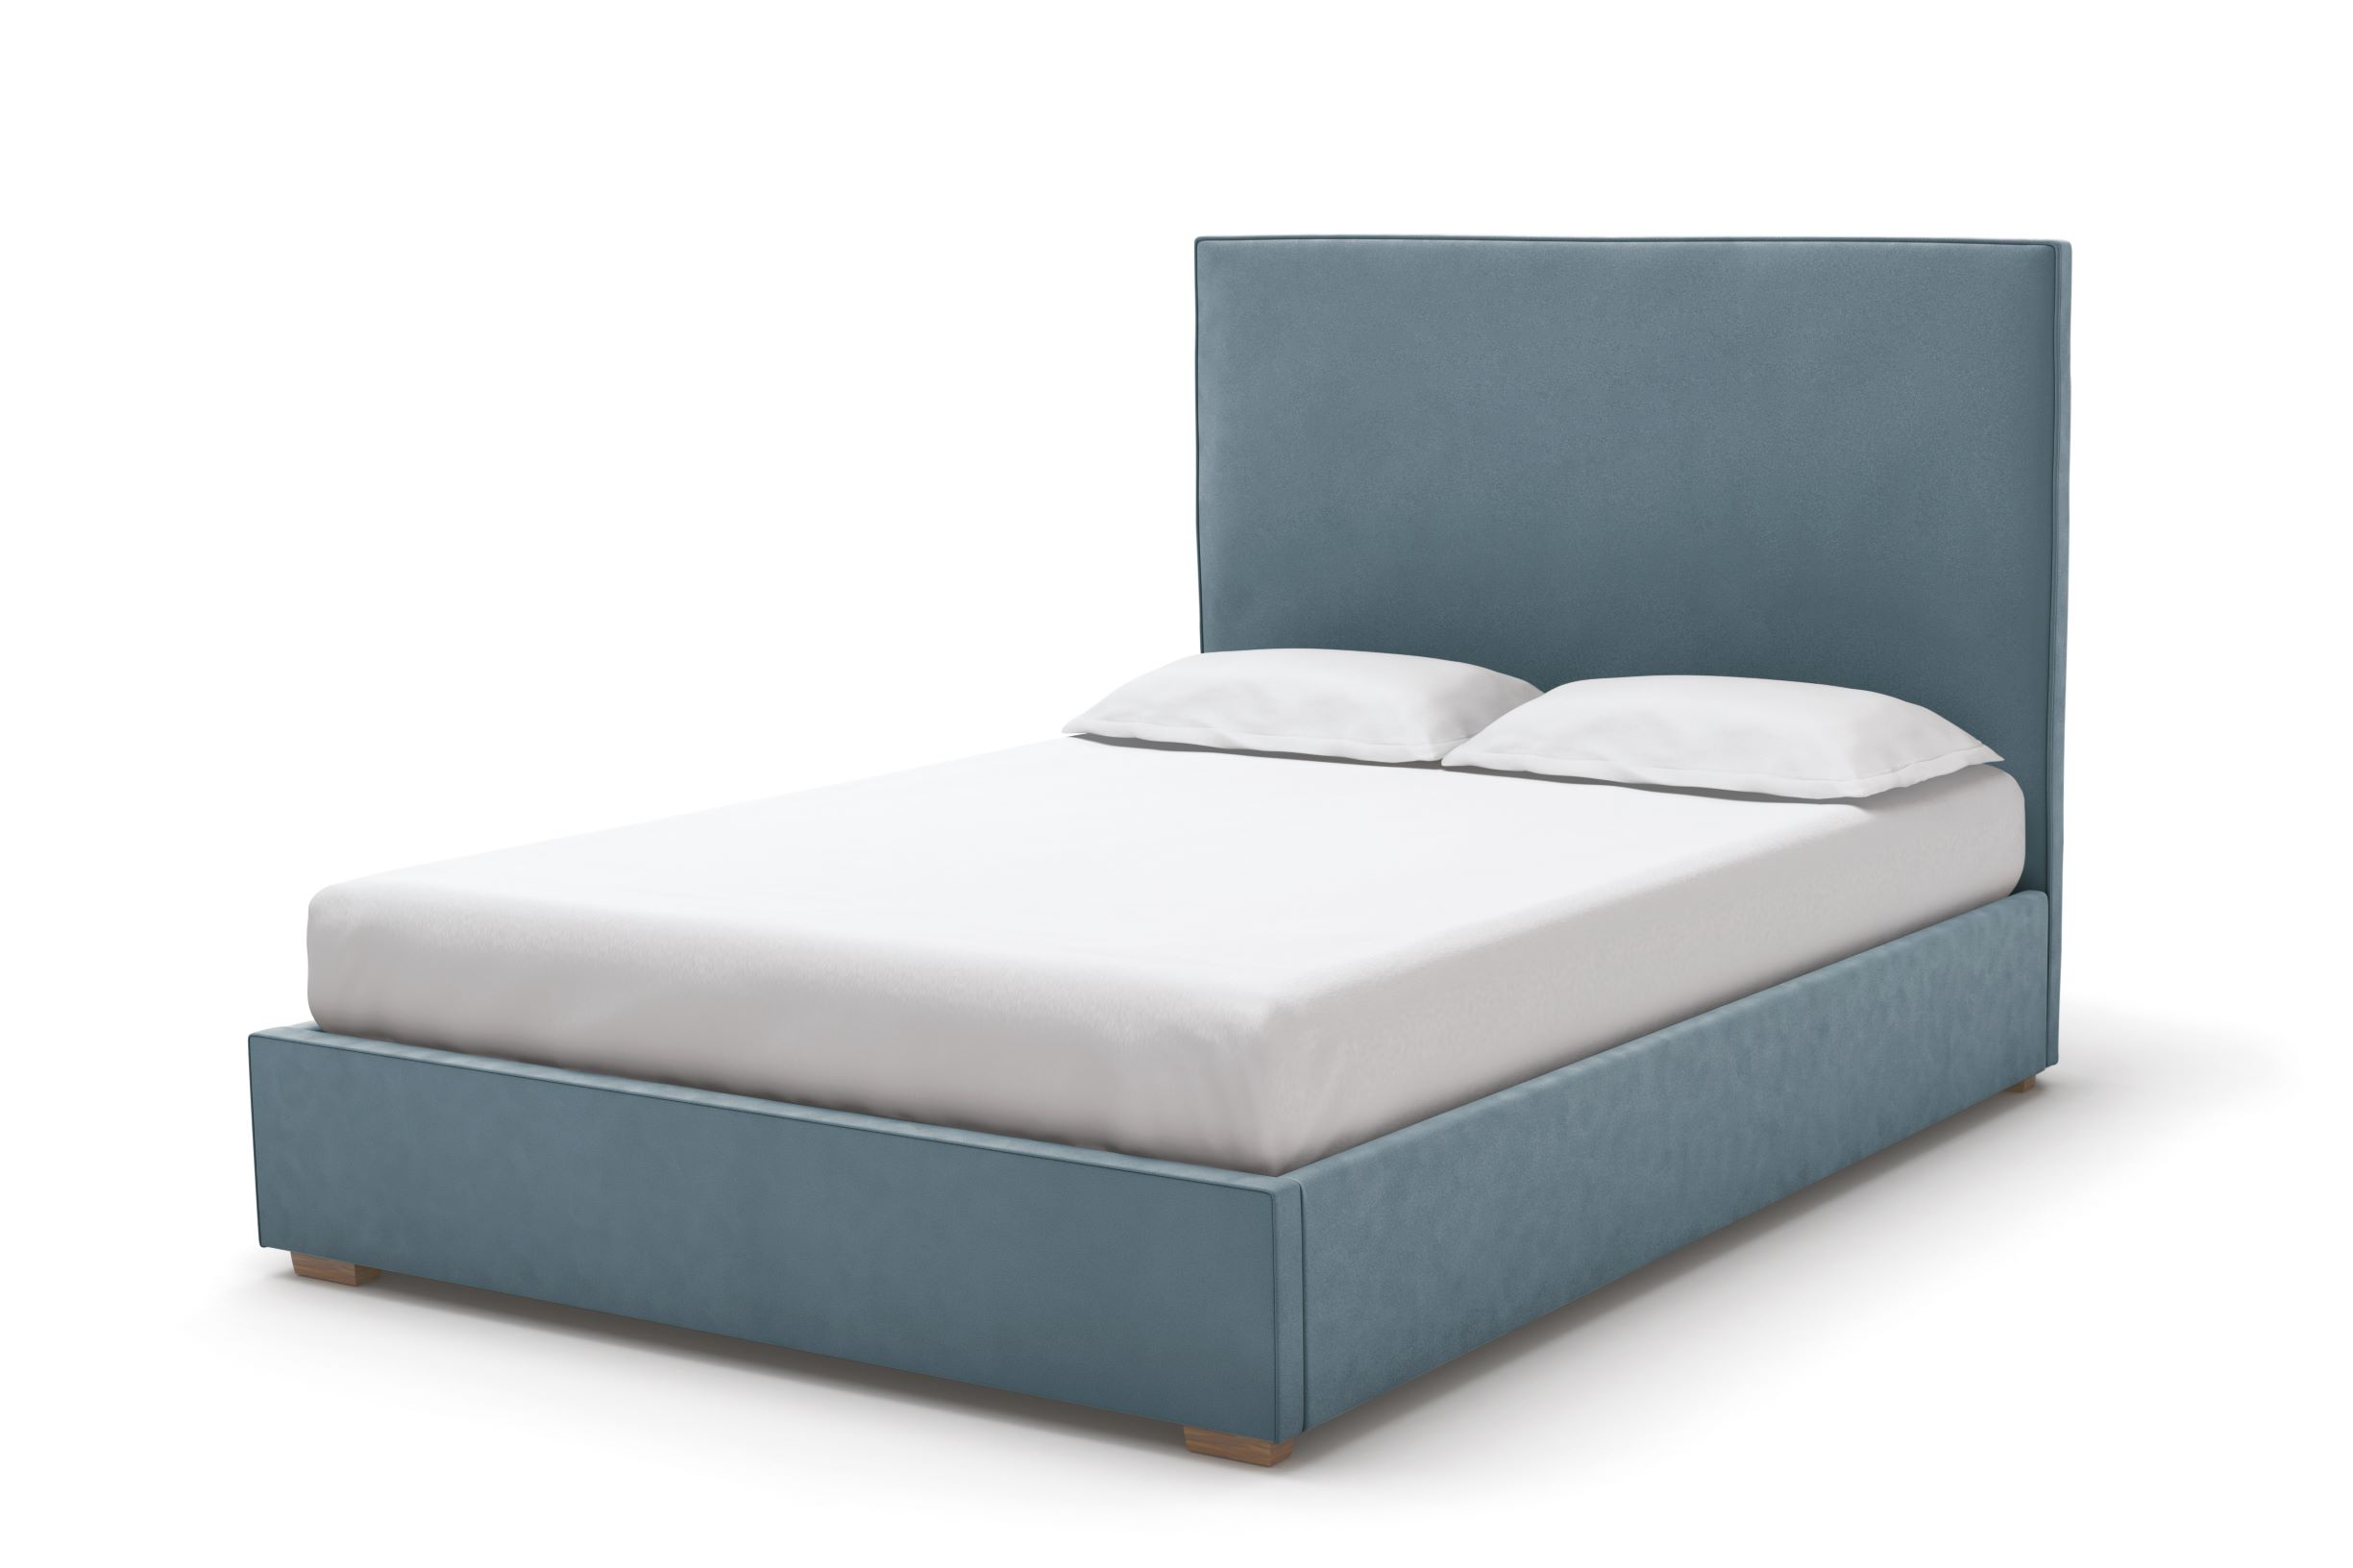 1 8 CGI_BEDS_Soho Ottoman Airforce1.png